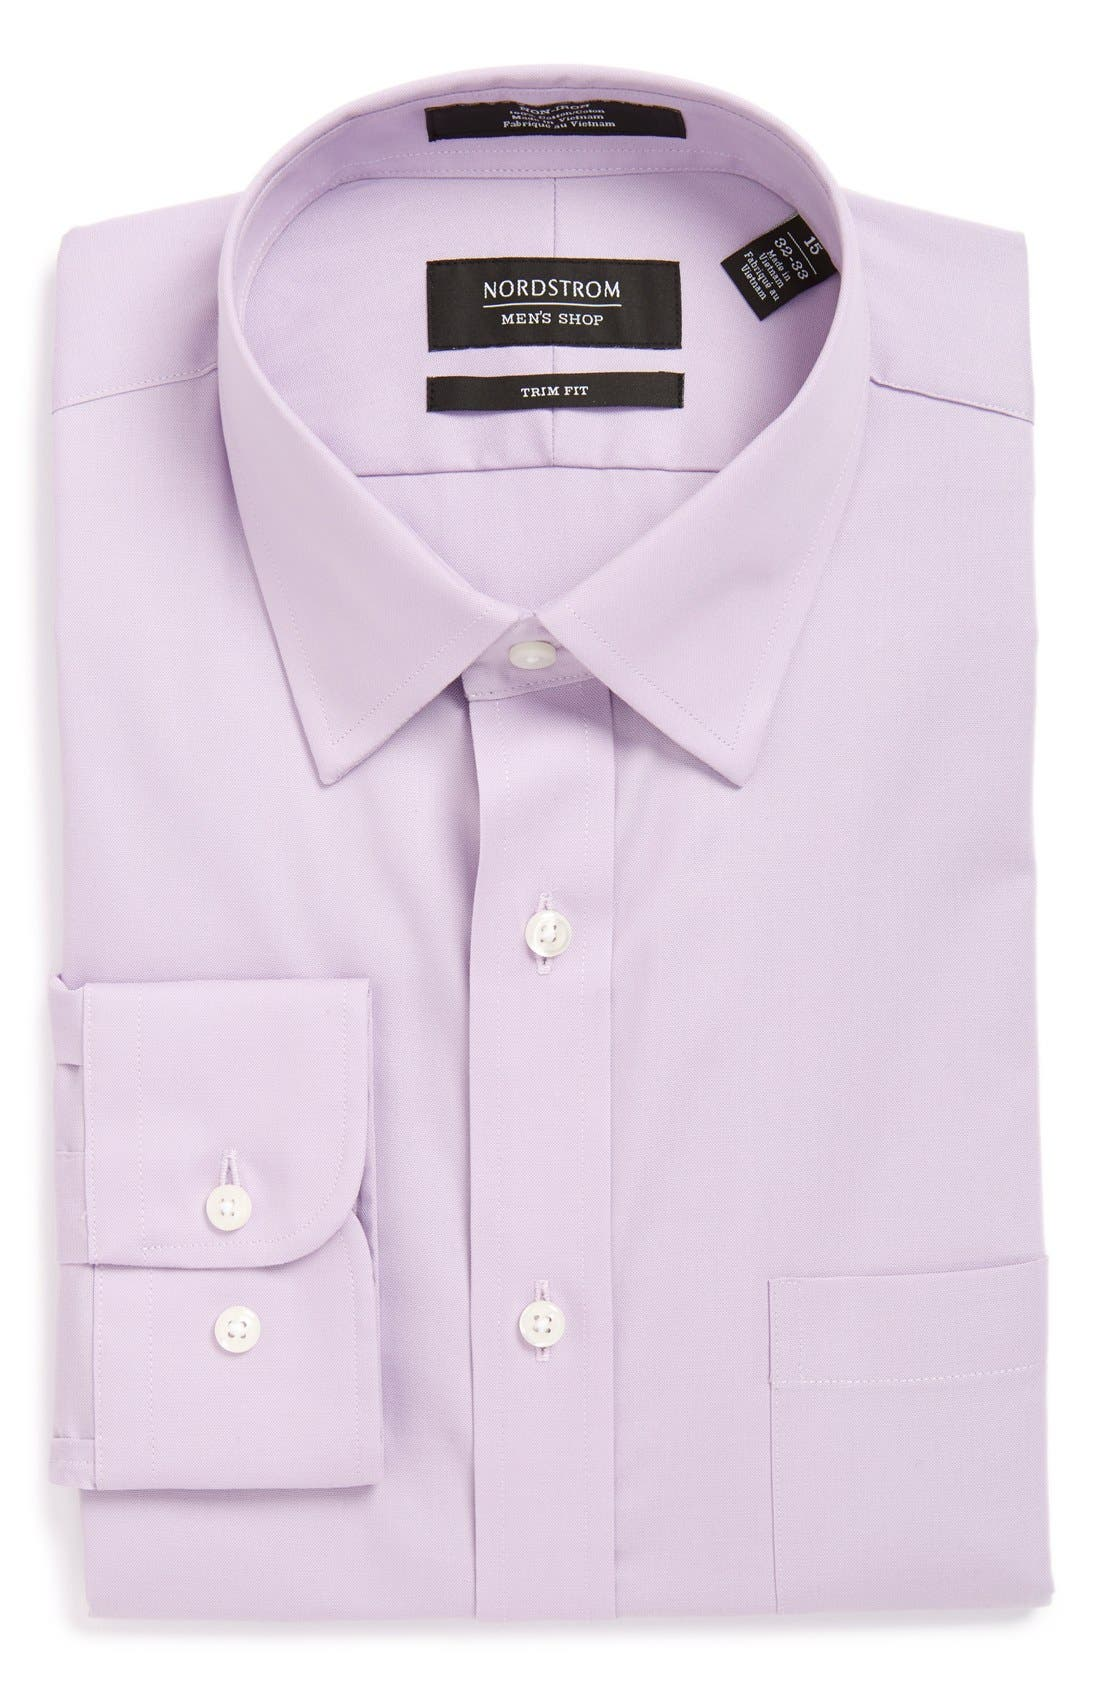 Nordstrom Men's Shop Trim Fit Non-Iron Solid Dress Shirt